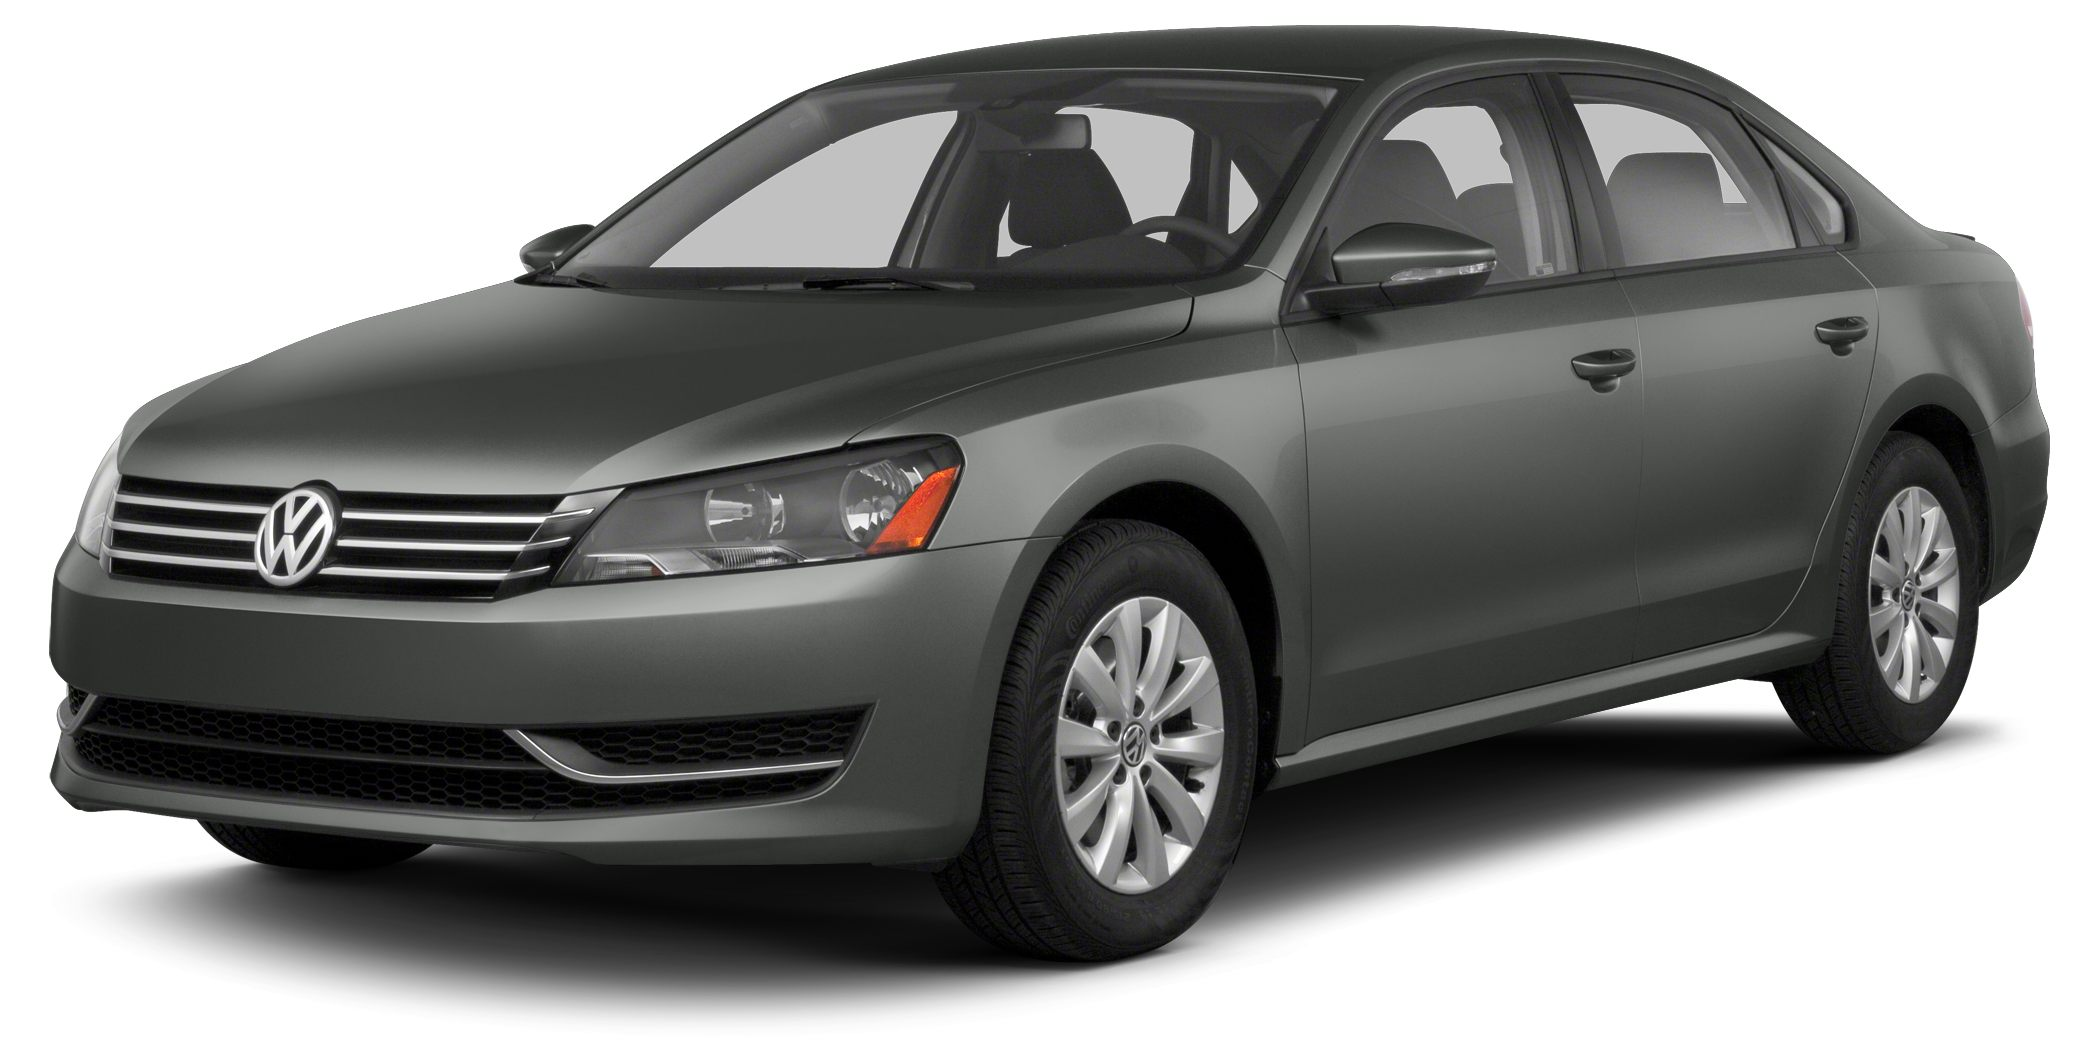 2013 Volkswagen Passat 25 S 3122 HighwayCity MPG Awards  2013 KBBcom 10 Best Family Cars  2